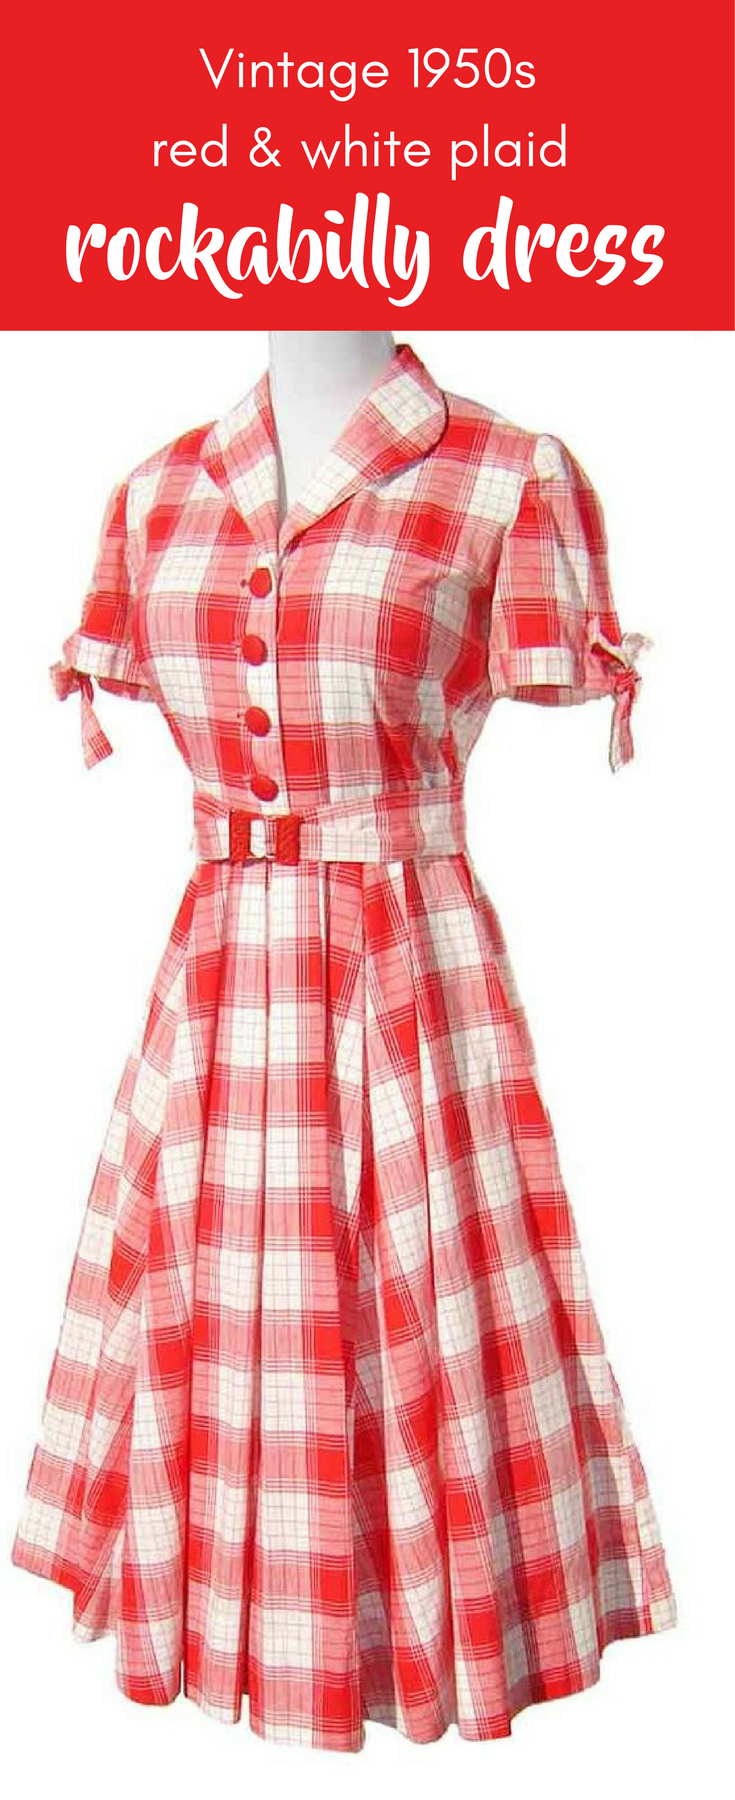 Adorable vintage early us cotton day dress in a bright red and